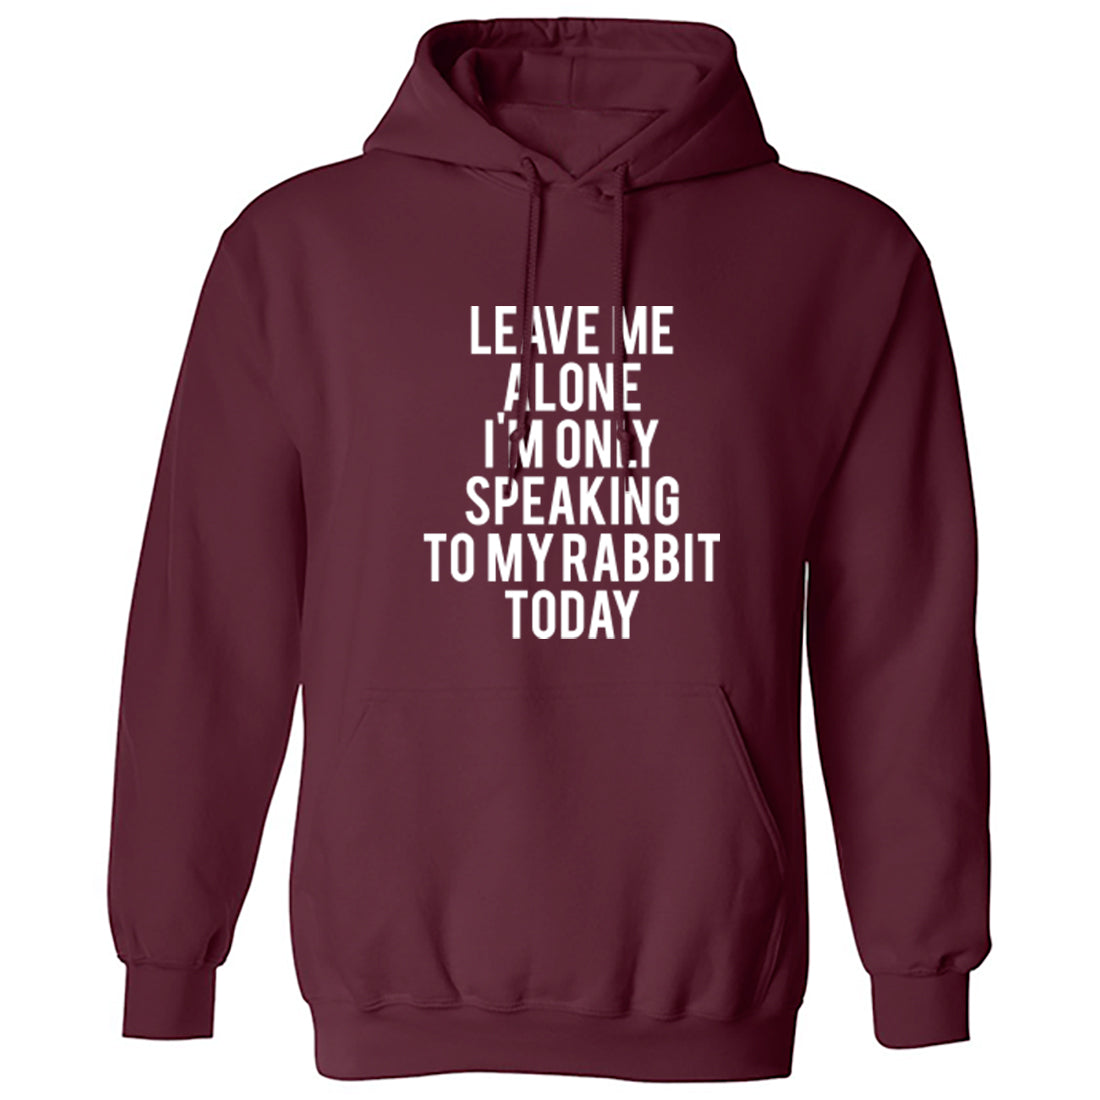 Leave Me Alone I'm Only Speaking To My Rabbit Today Unisex Hoodie K0946 - Illustrated Identity Ltd.